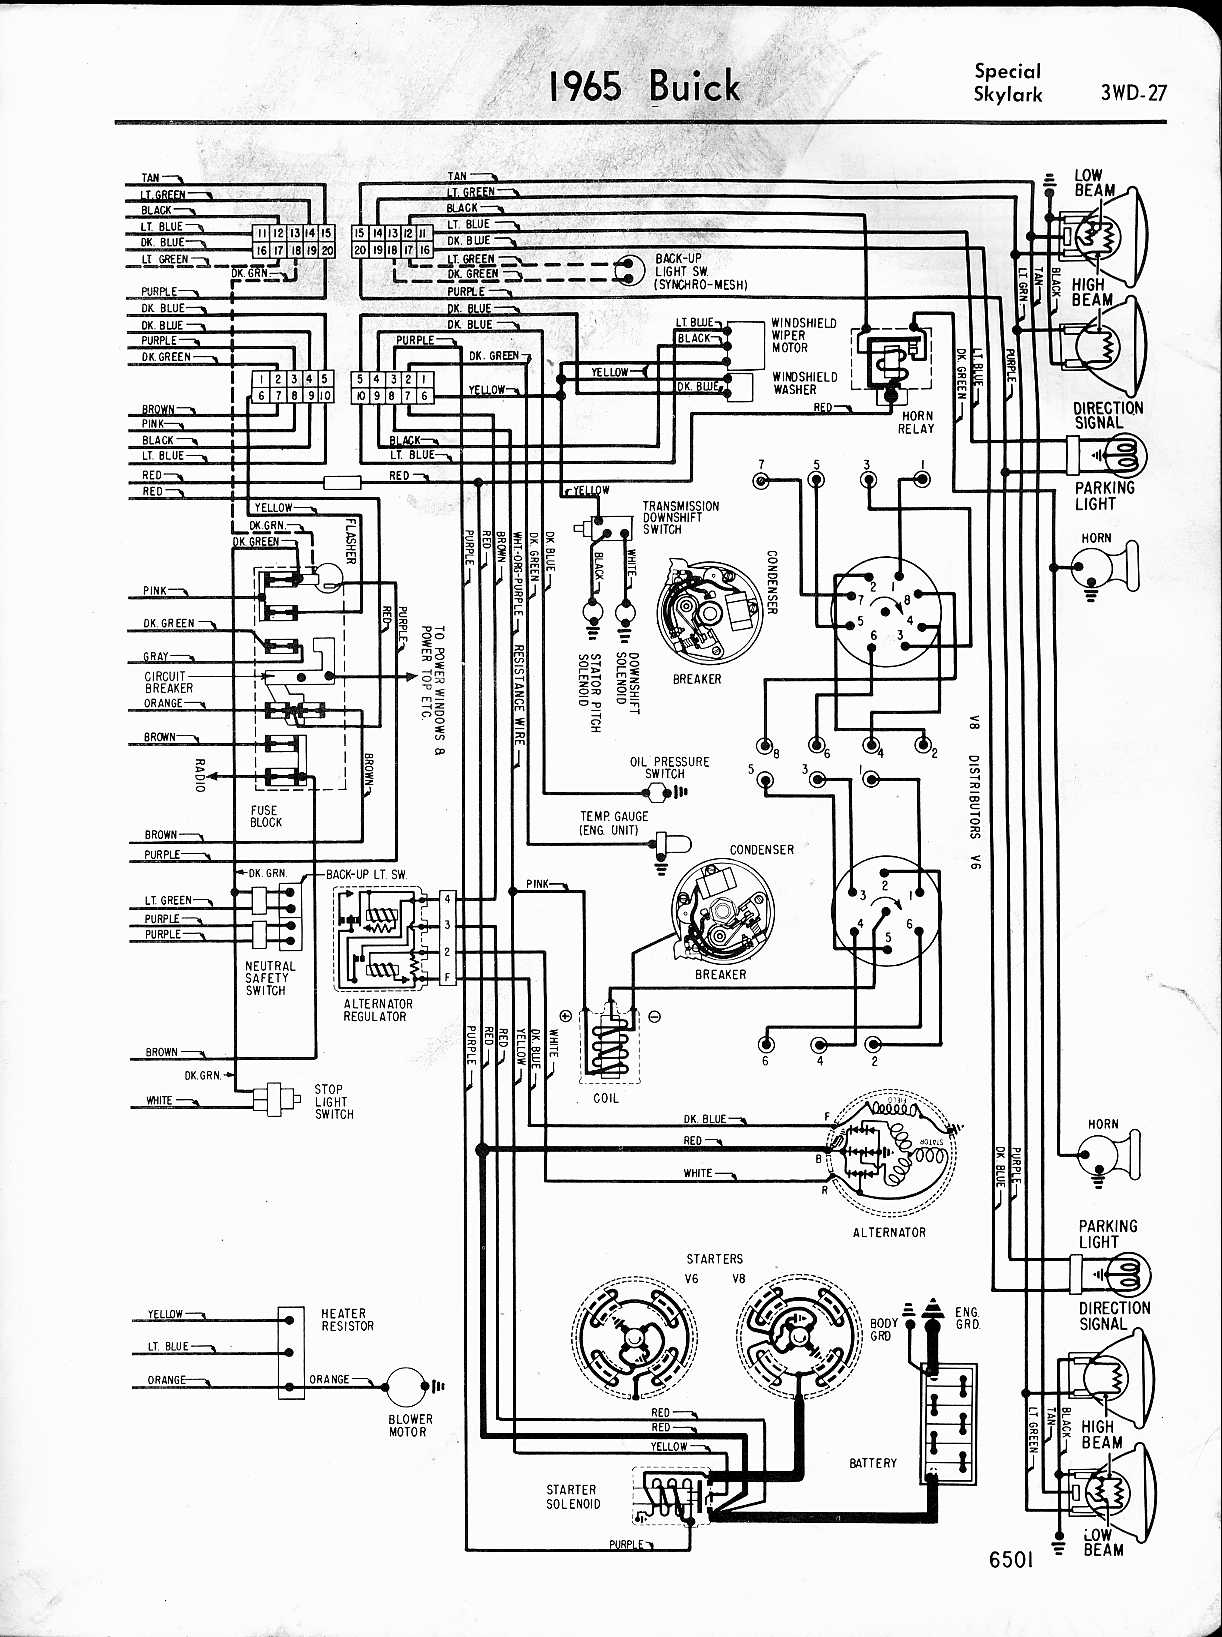 [QMVU_8575]  67 Buick Wiring Diagram Wiring Diagram - CUTEDRAWING.TILLFABRIKEN.SE | Buick Lights Wiring Diagram |  | cutedrawing.tillfabriken.se